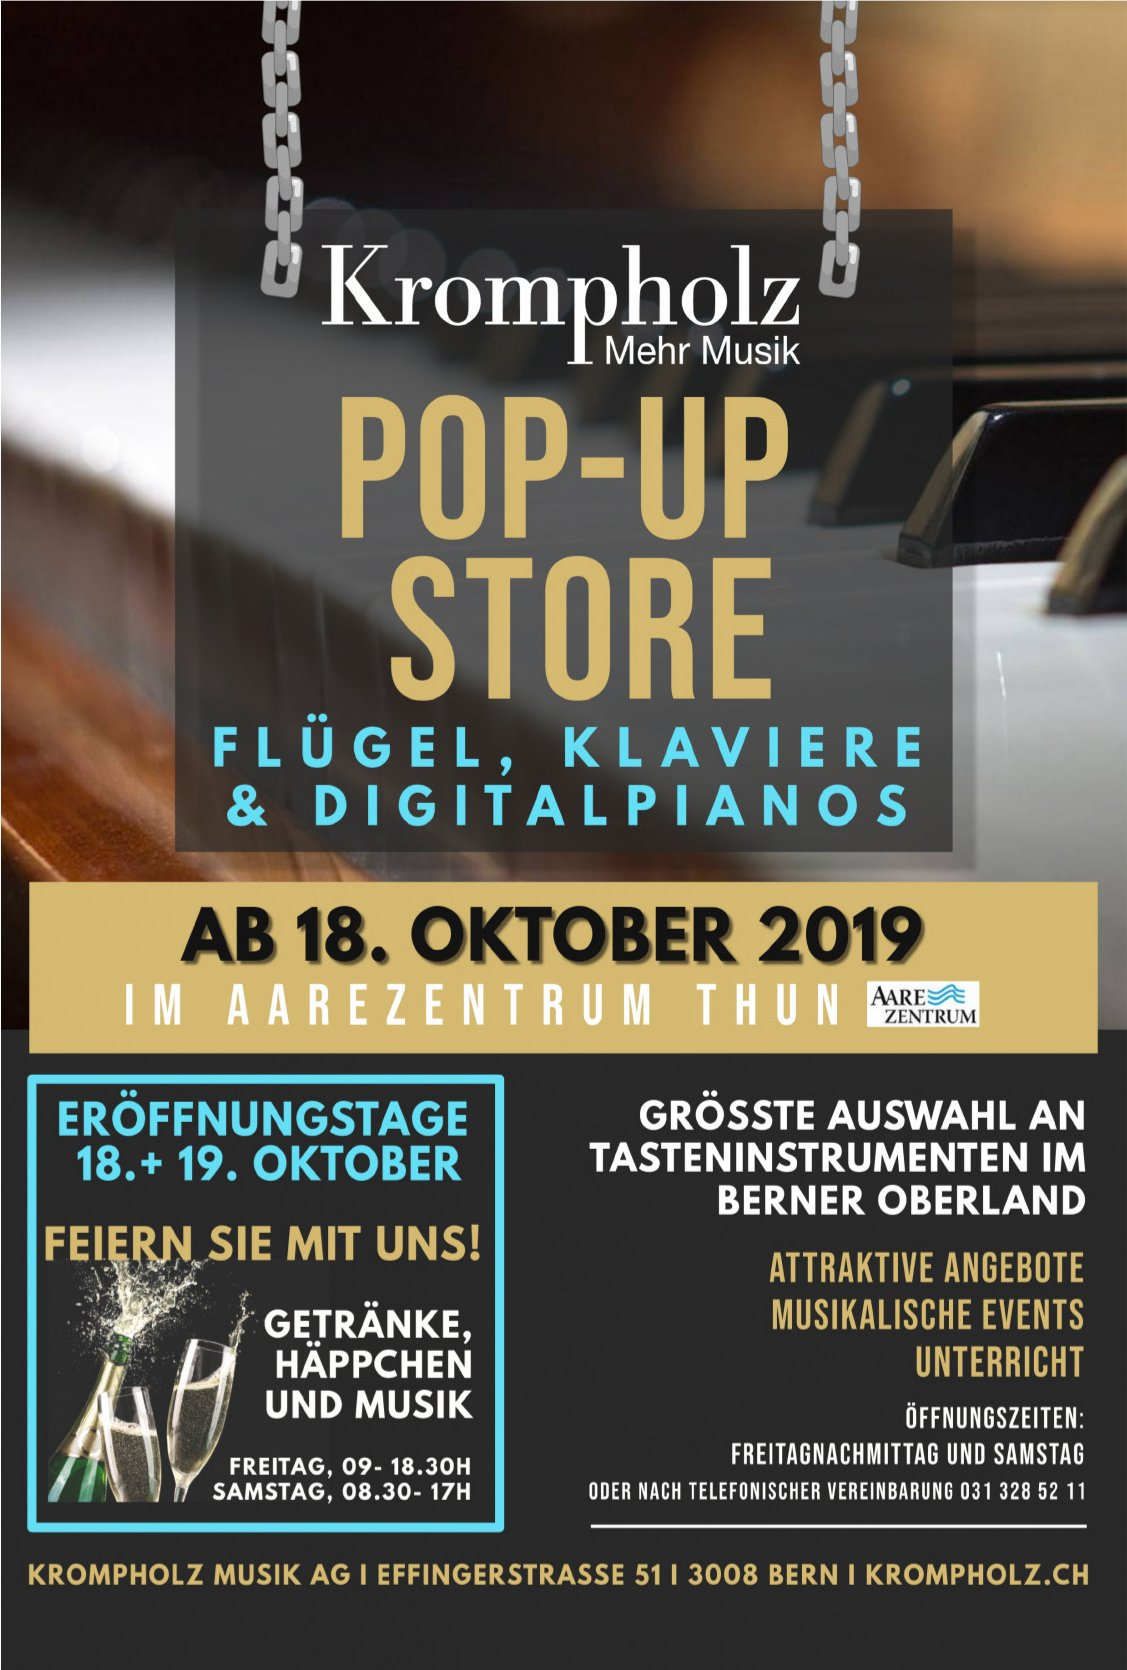 POP-UP STORE, FLÜGEL, KLAVIERE & DIGITALPIANOS, 18. OKTOBER, AAREZENTRUM THUN